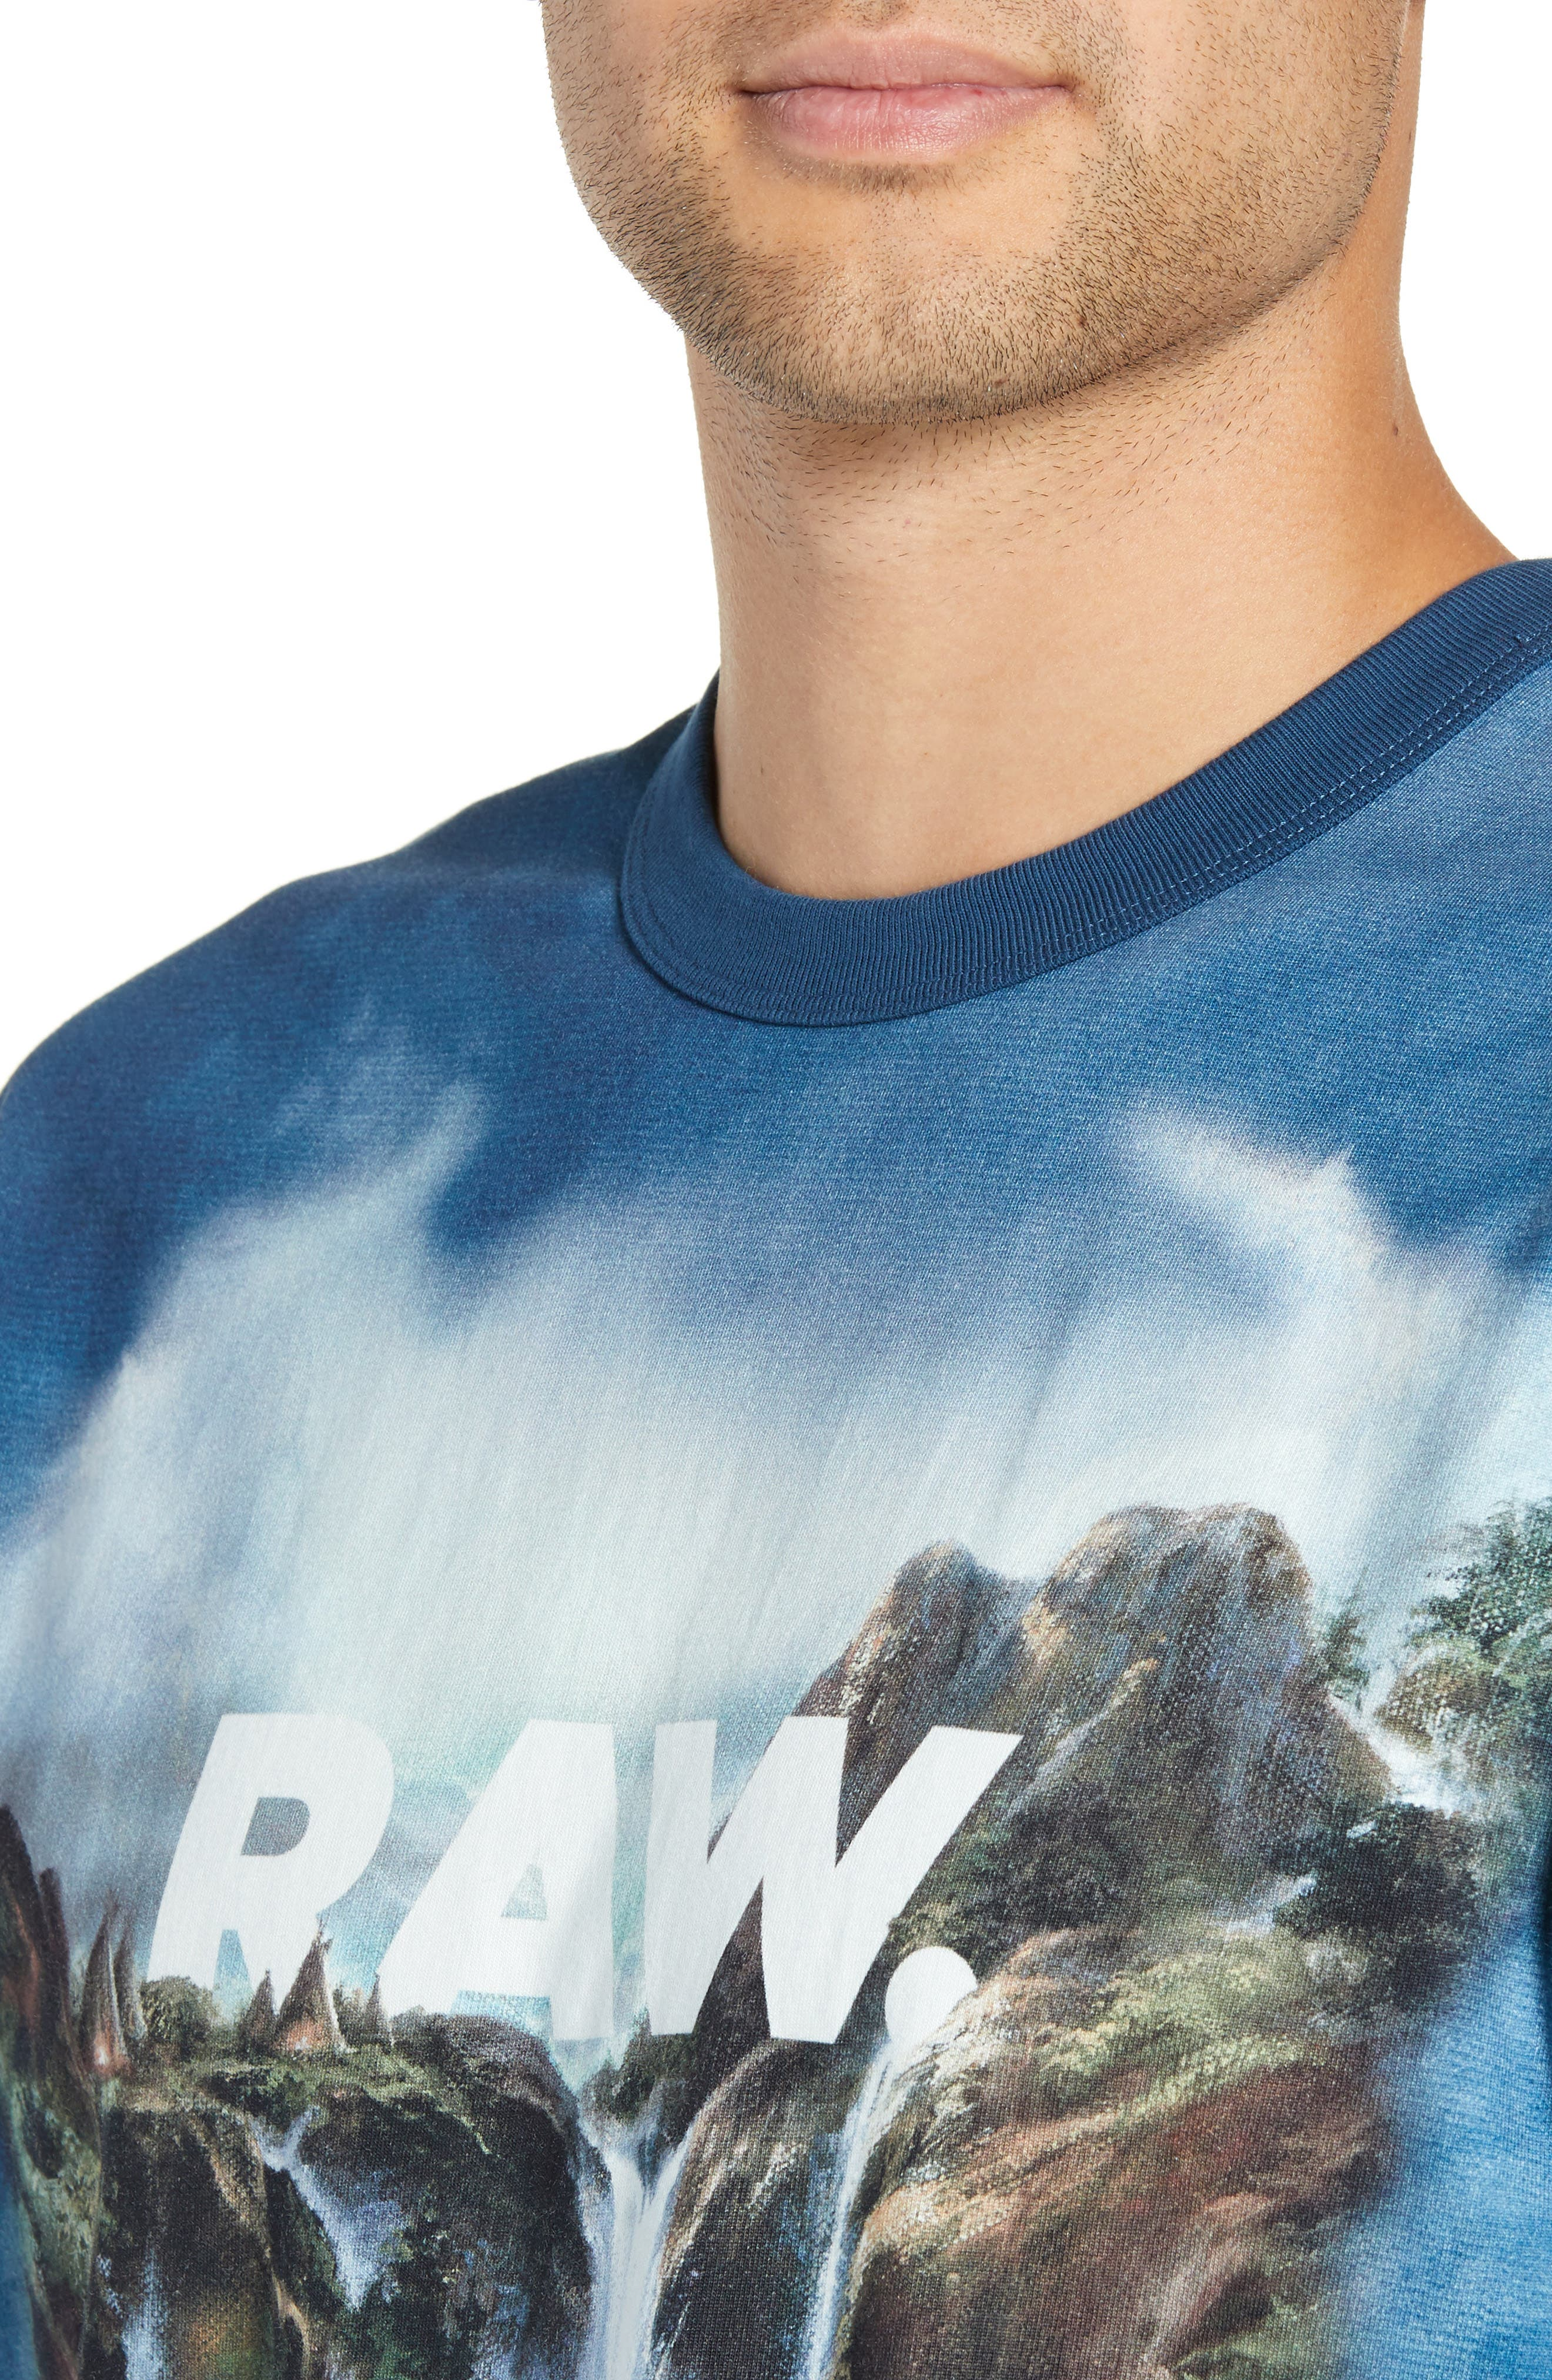 G-Star Cyrer Waterfall Loose T-Shirt,                             Alternate thumbnail 4, color,                             TEAL BLUE